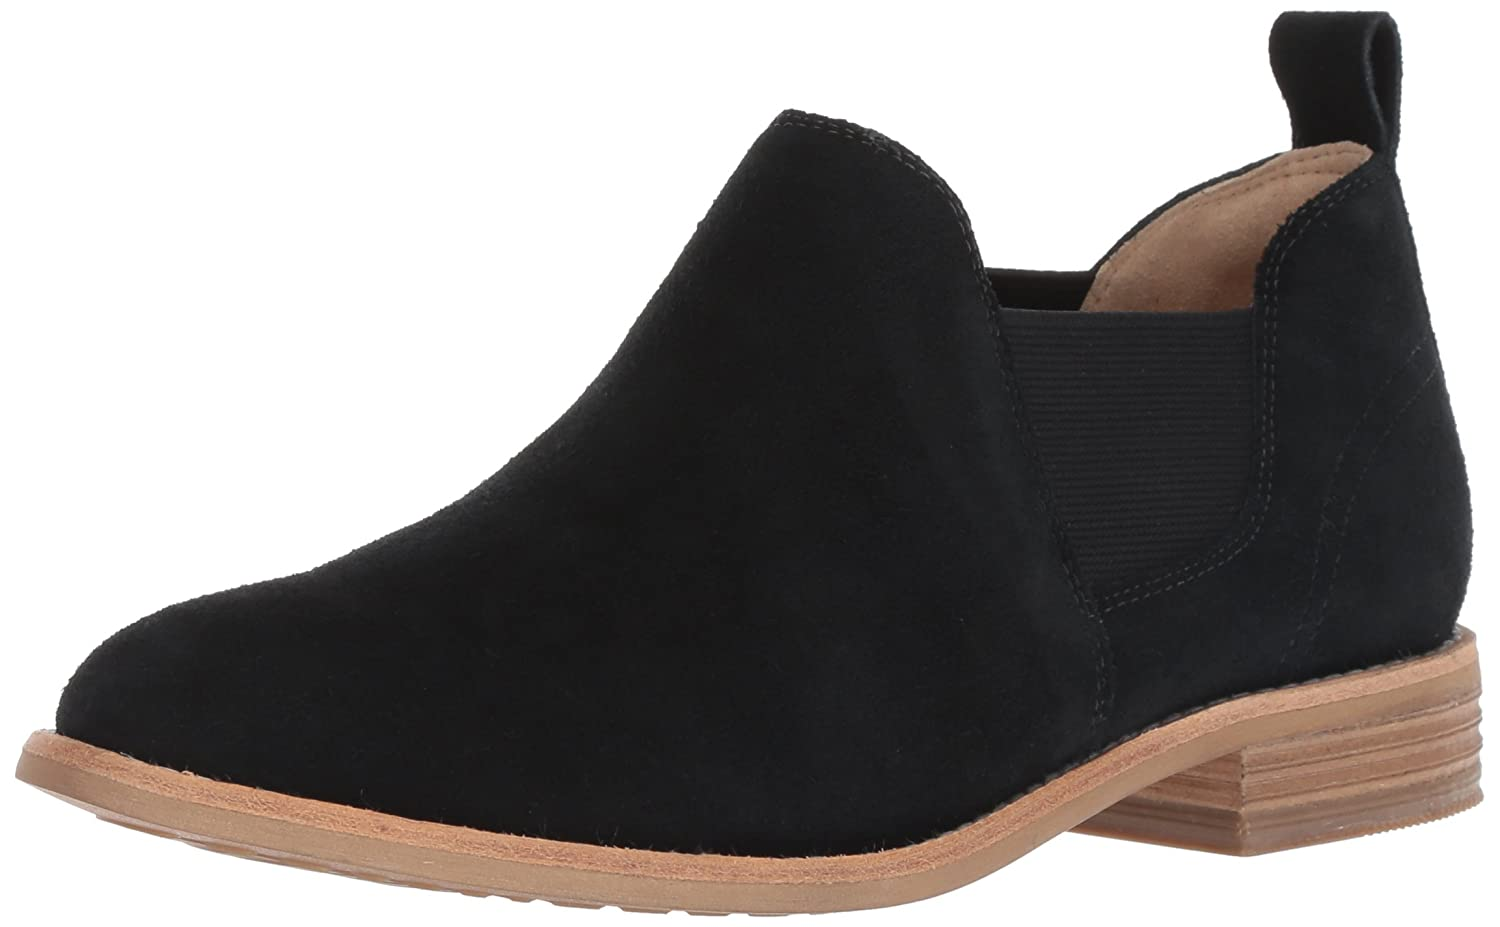 CLARKS Women's Edenvale Page Fashion Boot B077YDWZQ8 050 M US|Black Suede